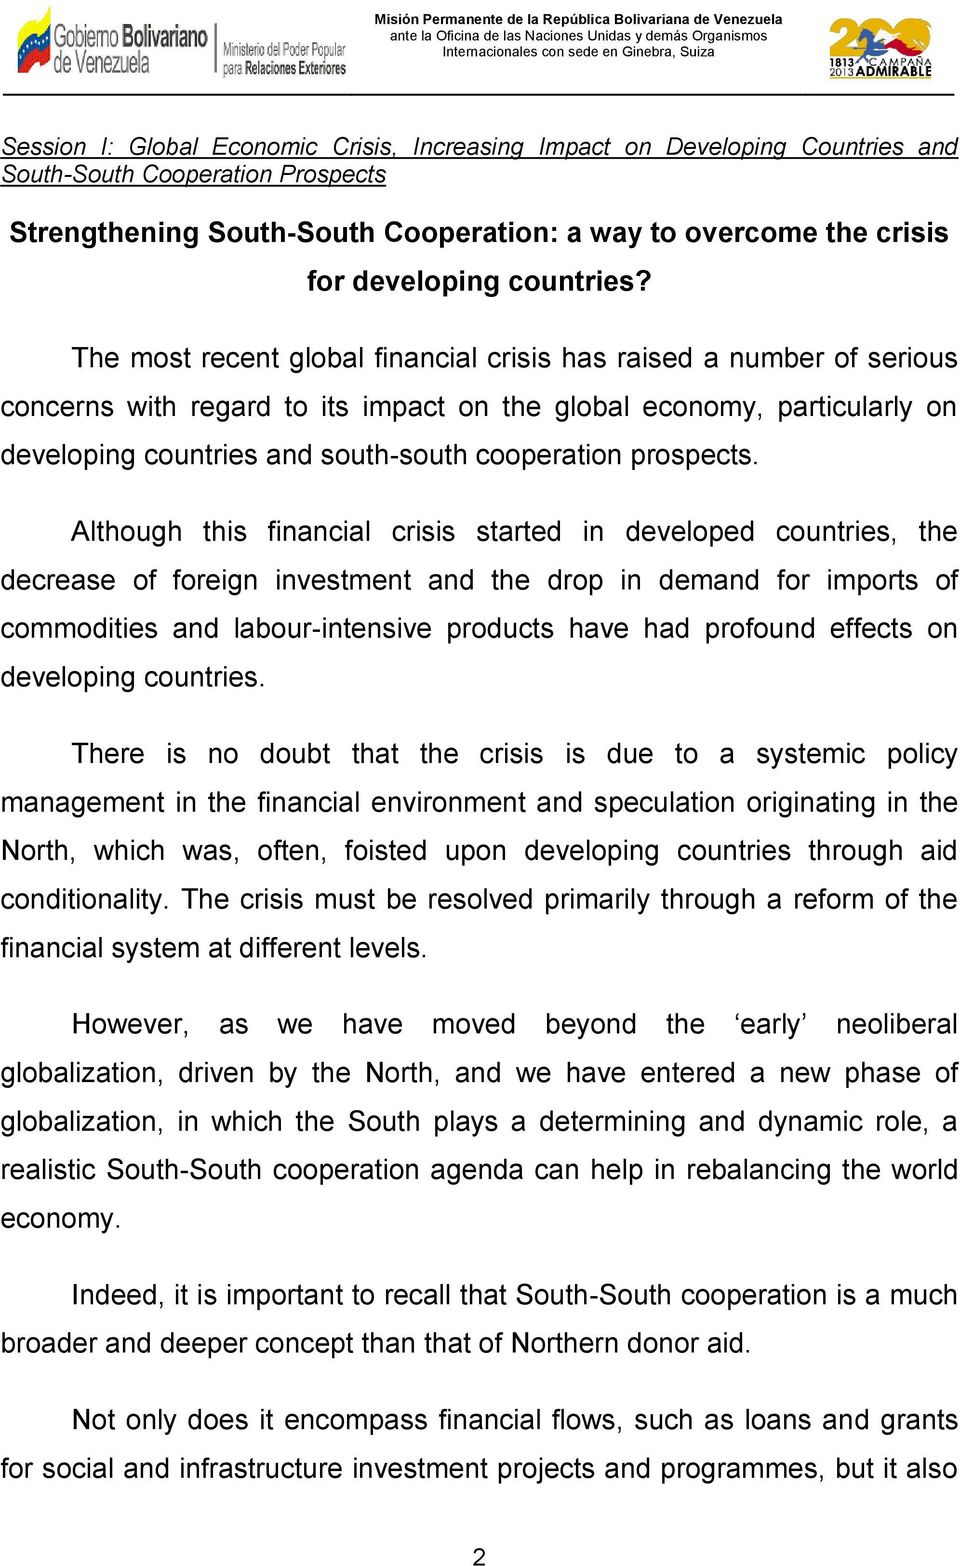 The most recent global financial crisis has raised a number of serious concerns with regard to its impact on the global economy, particularly on developing countries and south-south cooperation